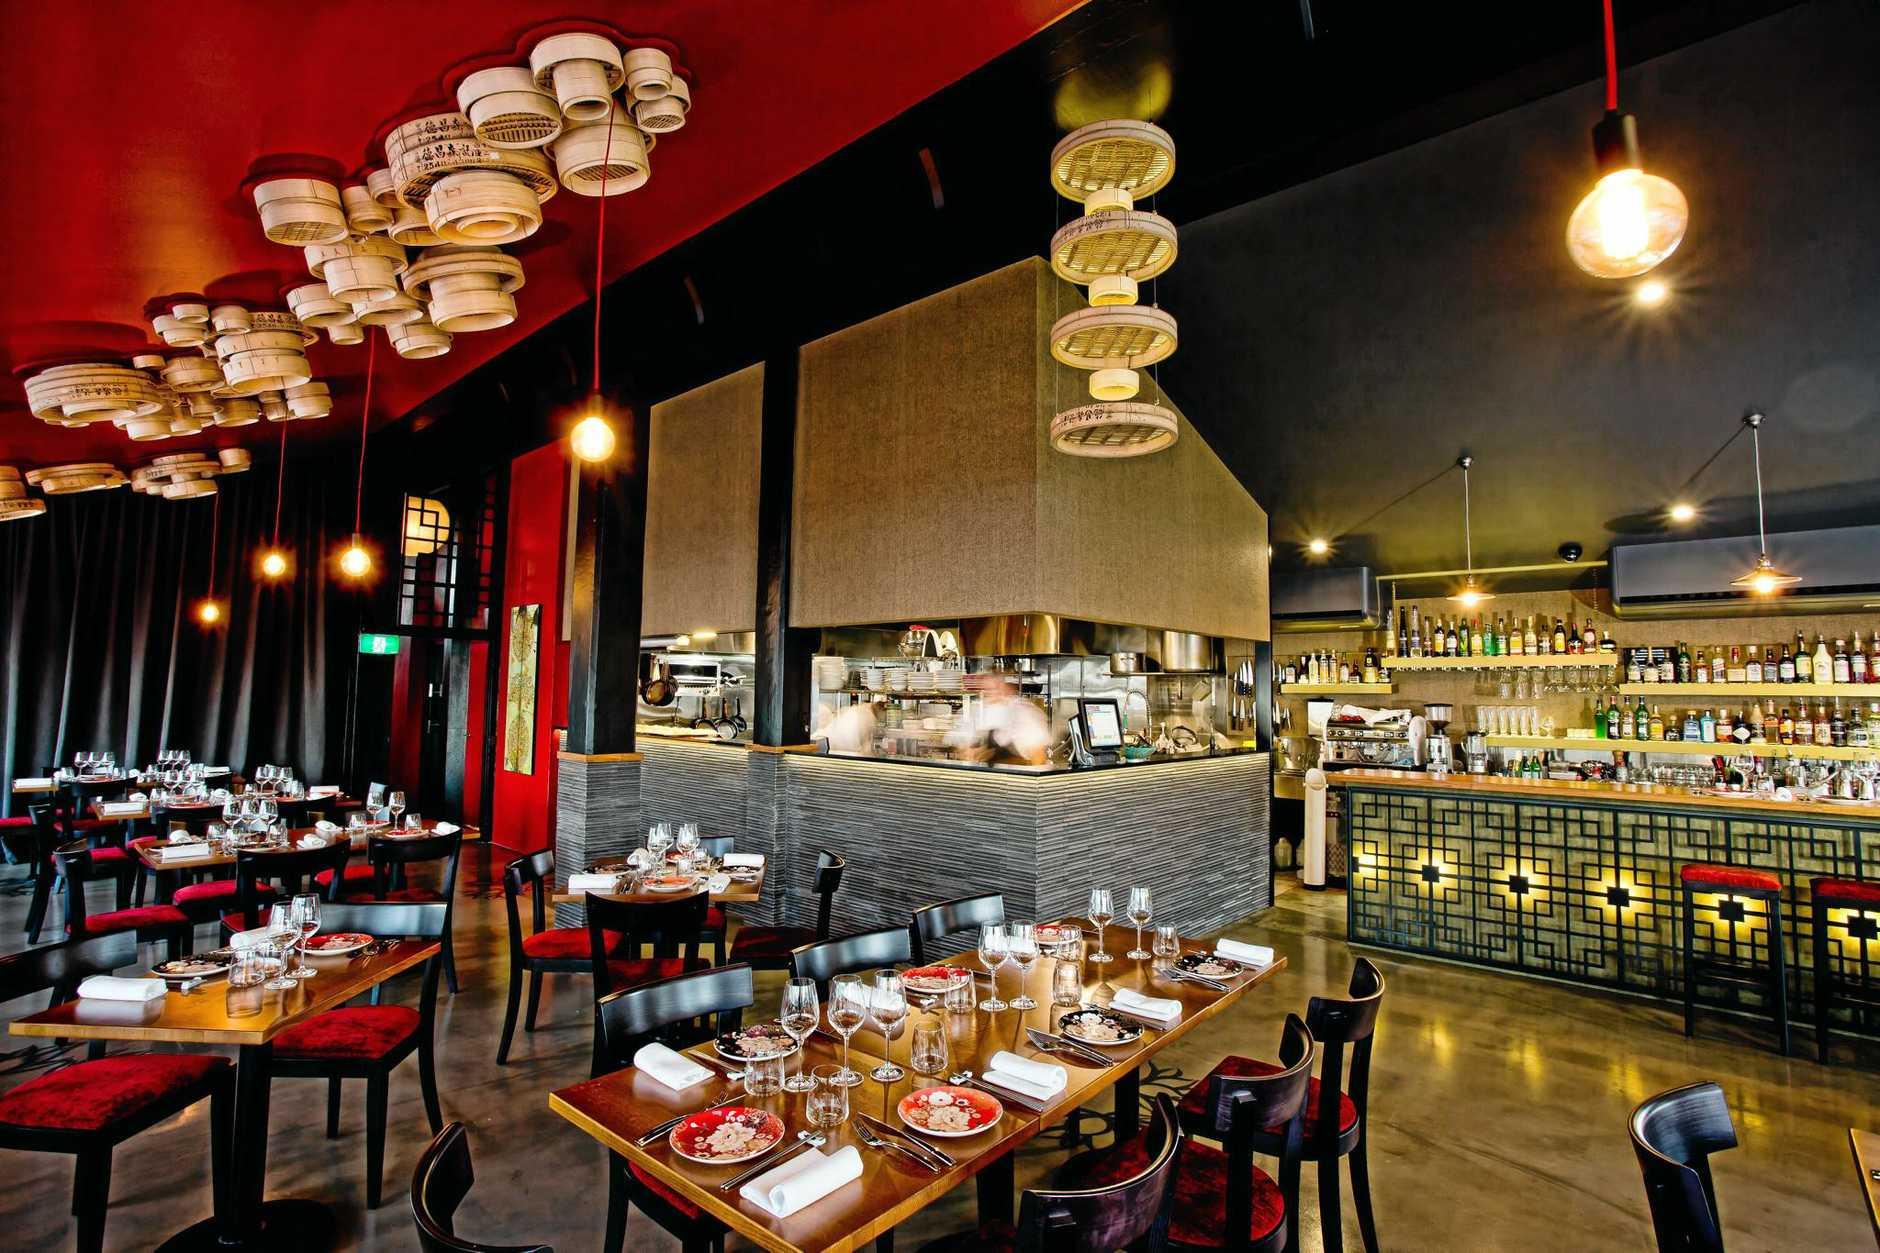 TOP GONG: Mooloolaba Spice Bar has been named in TripAdvisor's Top 10 Australian restaurants for 2016.